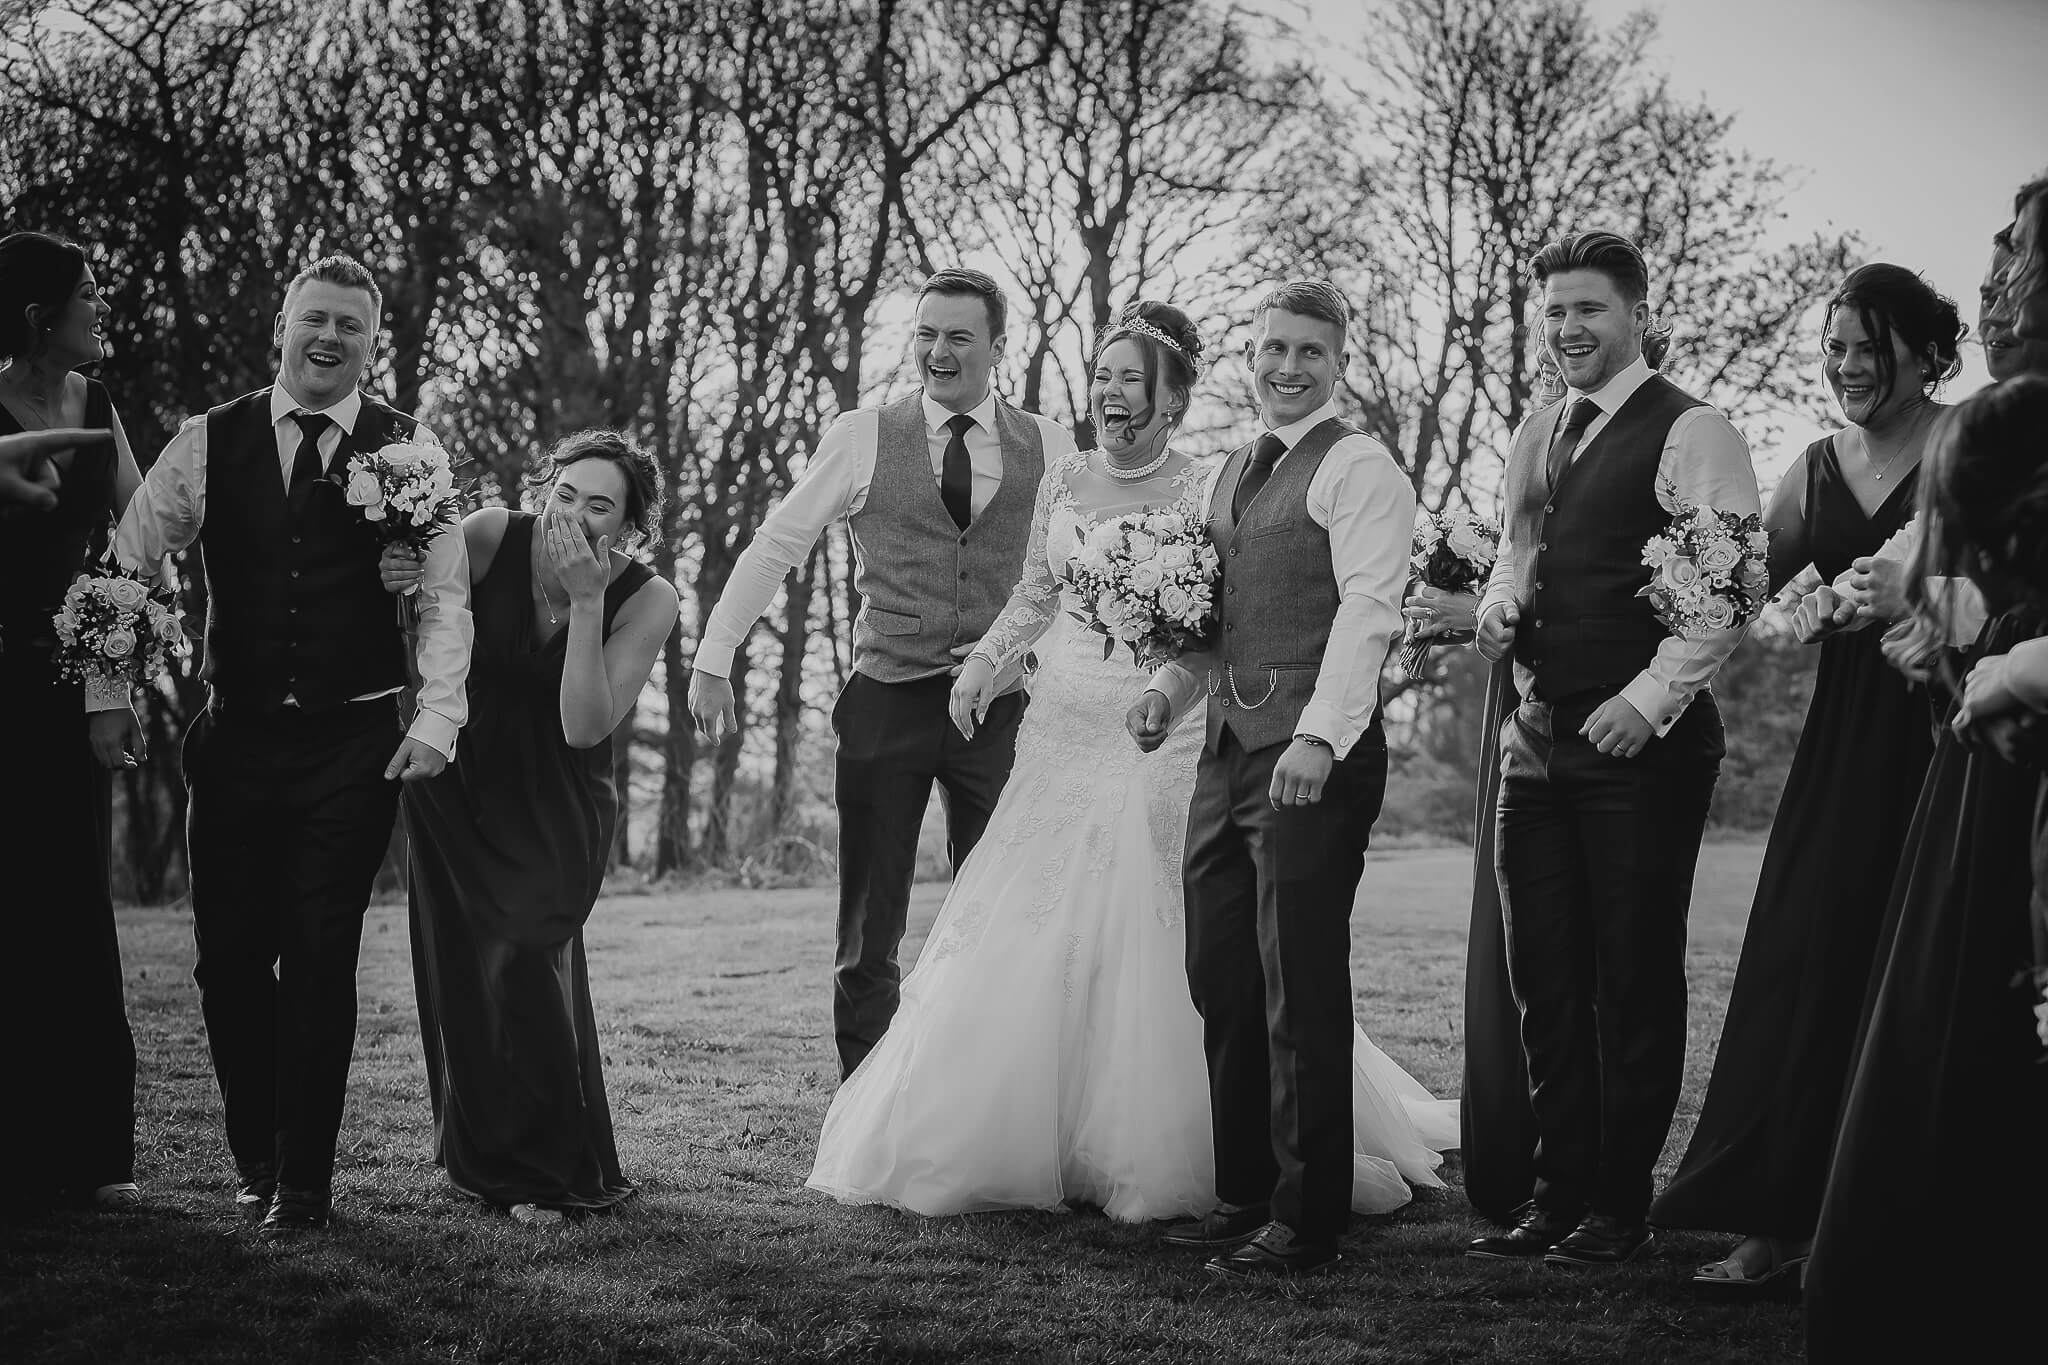 best-wedding-photographers-uk-europe-stanbury-photography-095